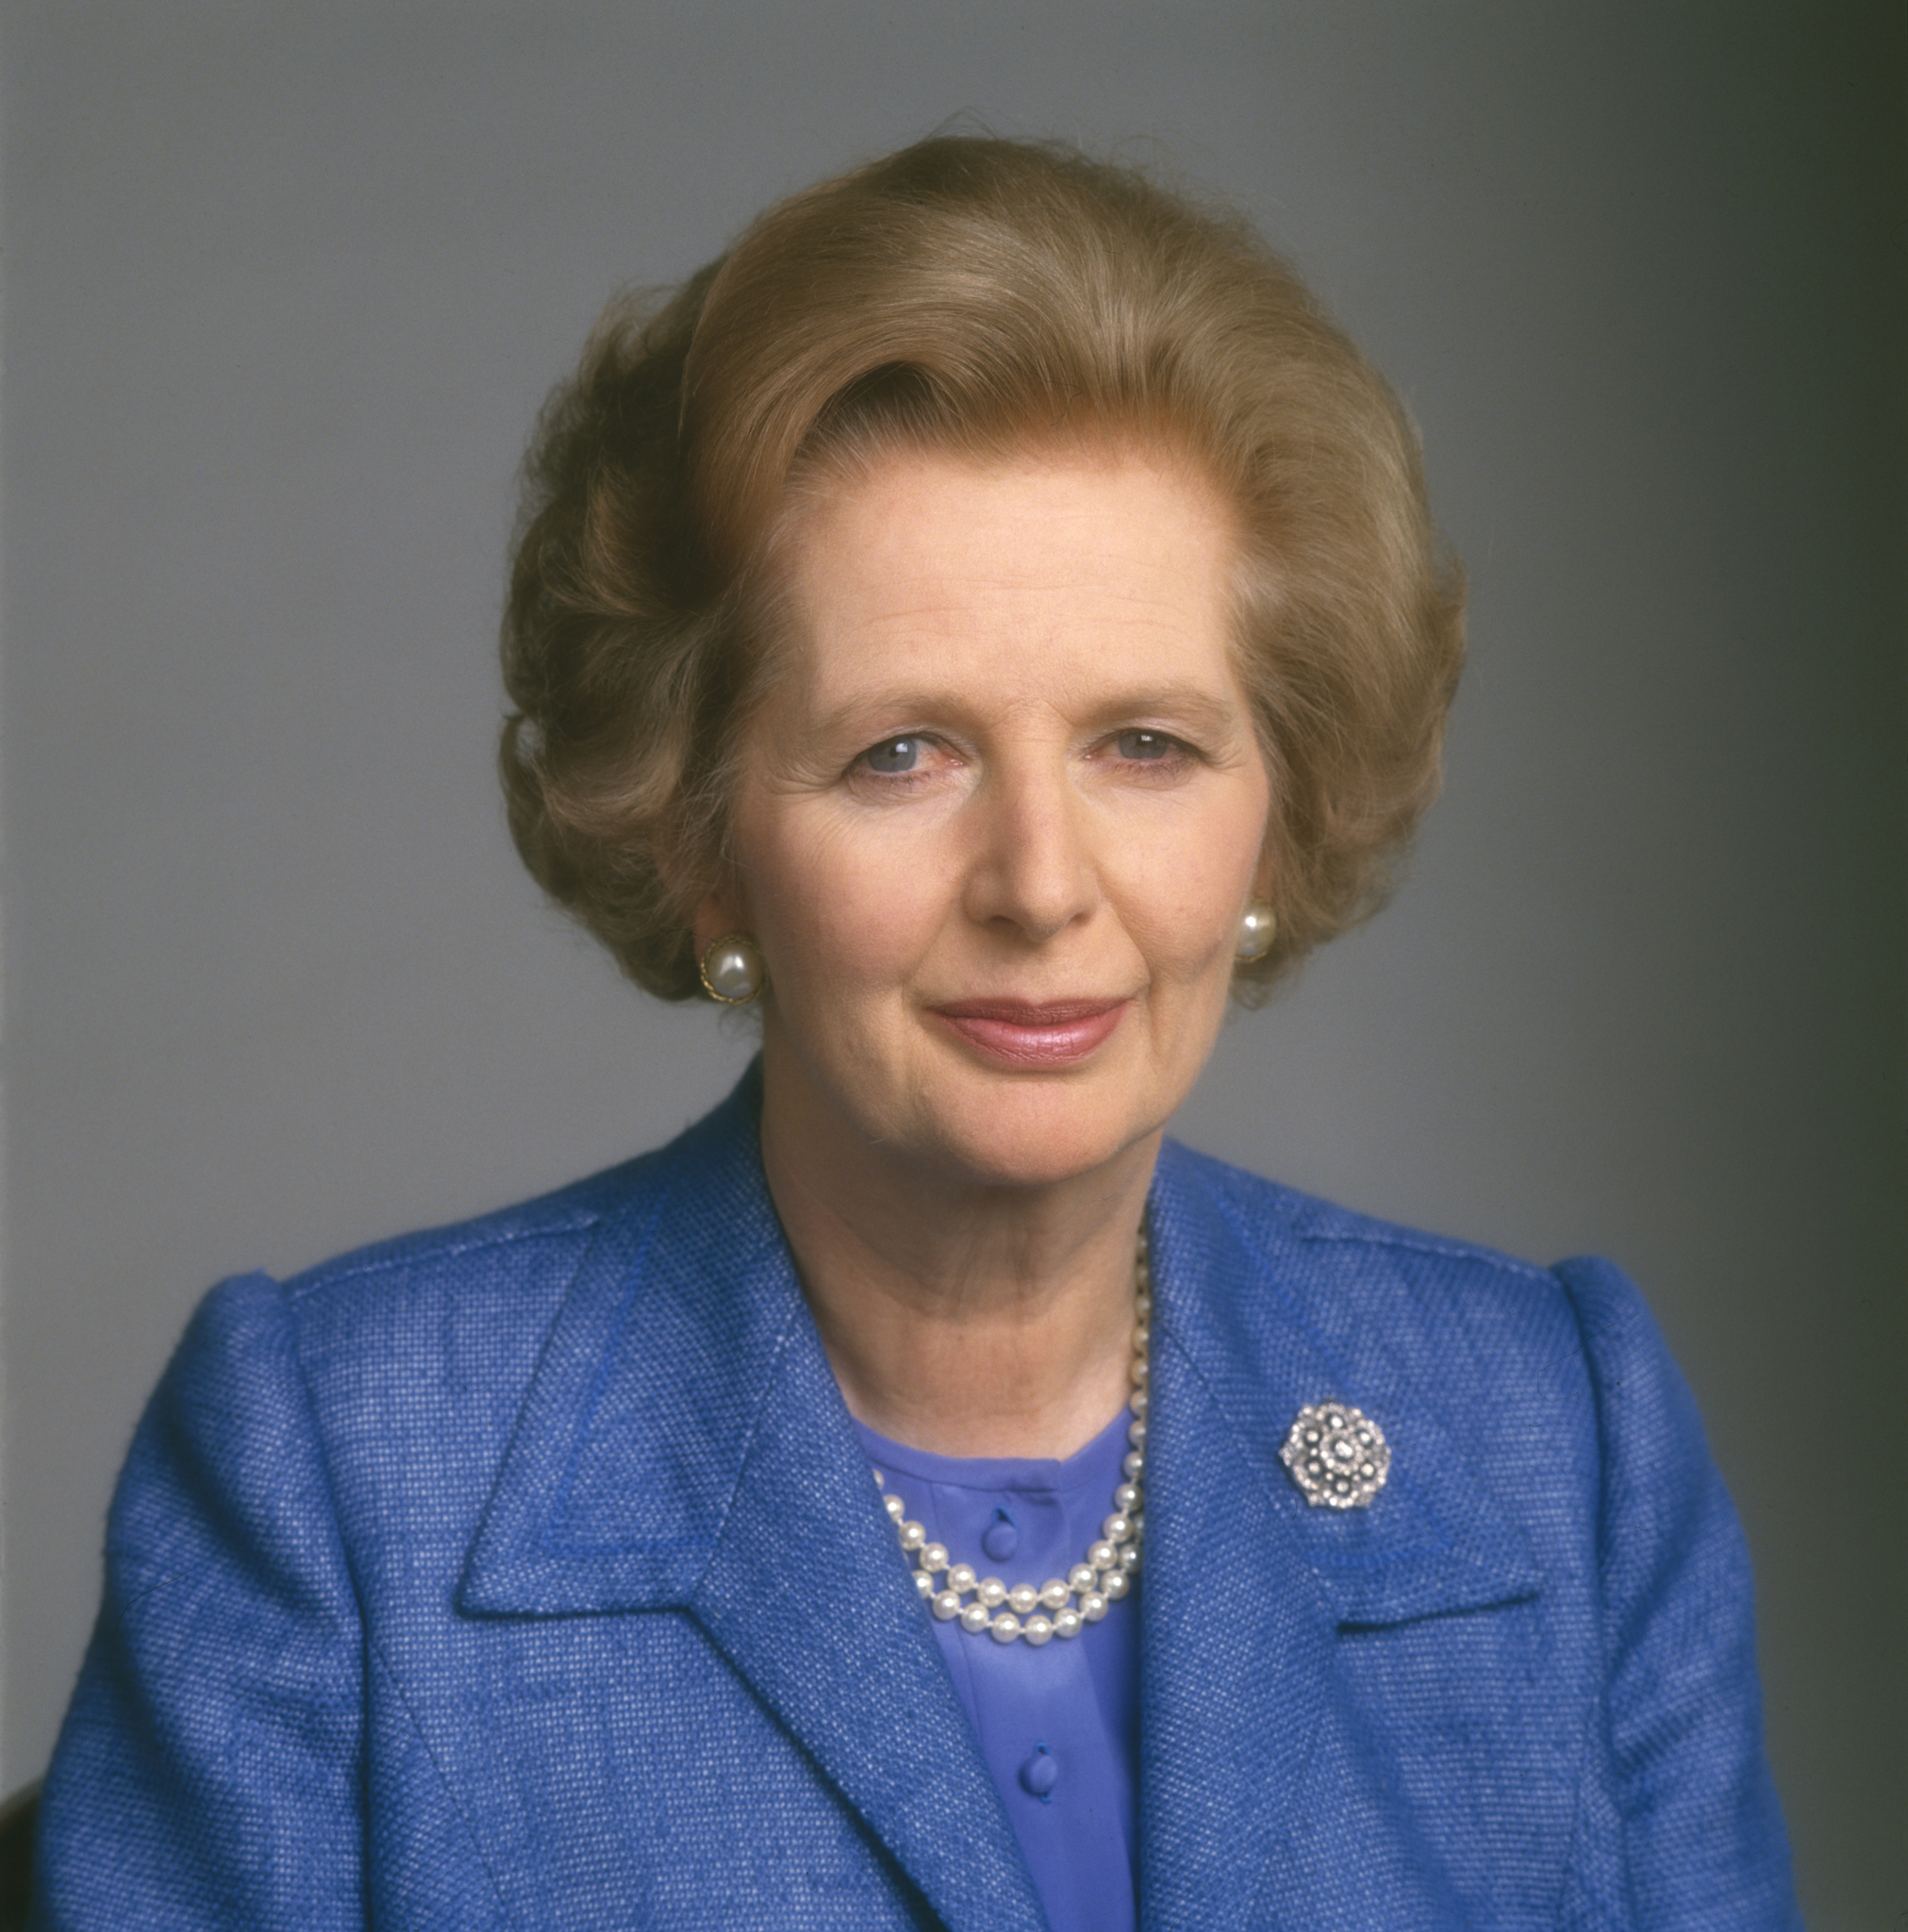 Margaret Thatcher I 1925 2013